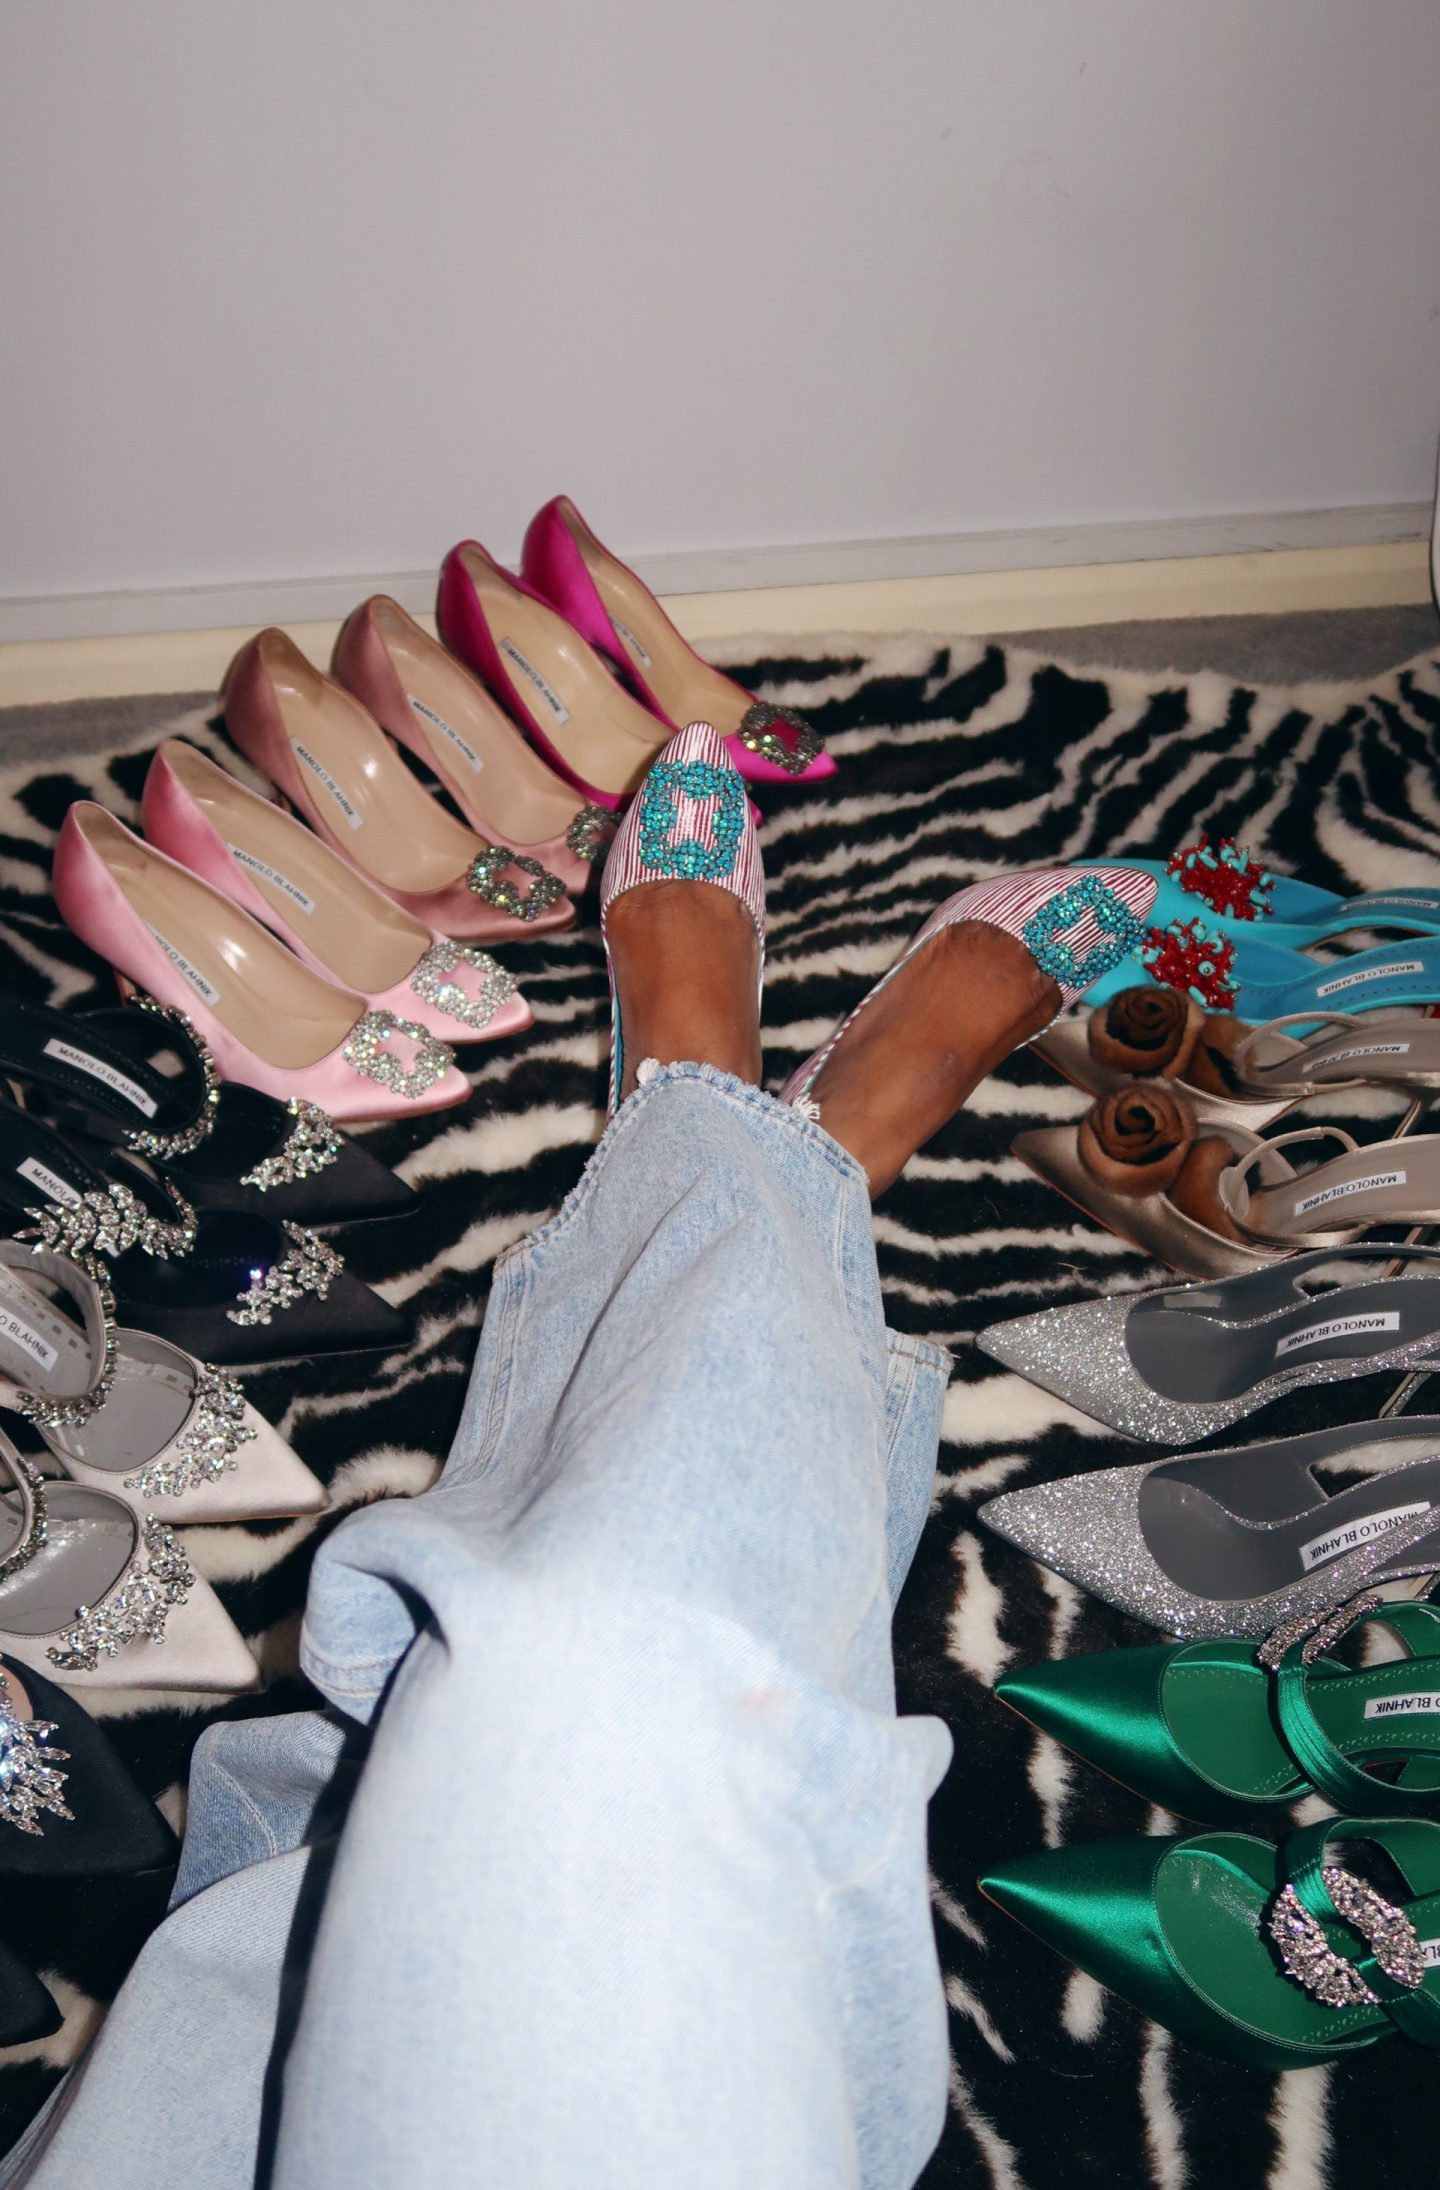 Manolo Blahnik Collection & Review